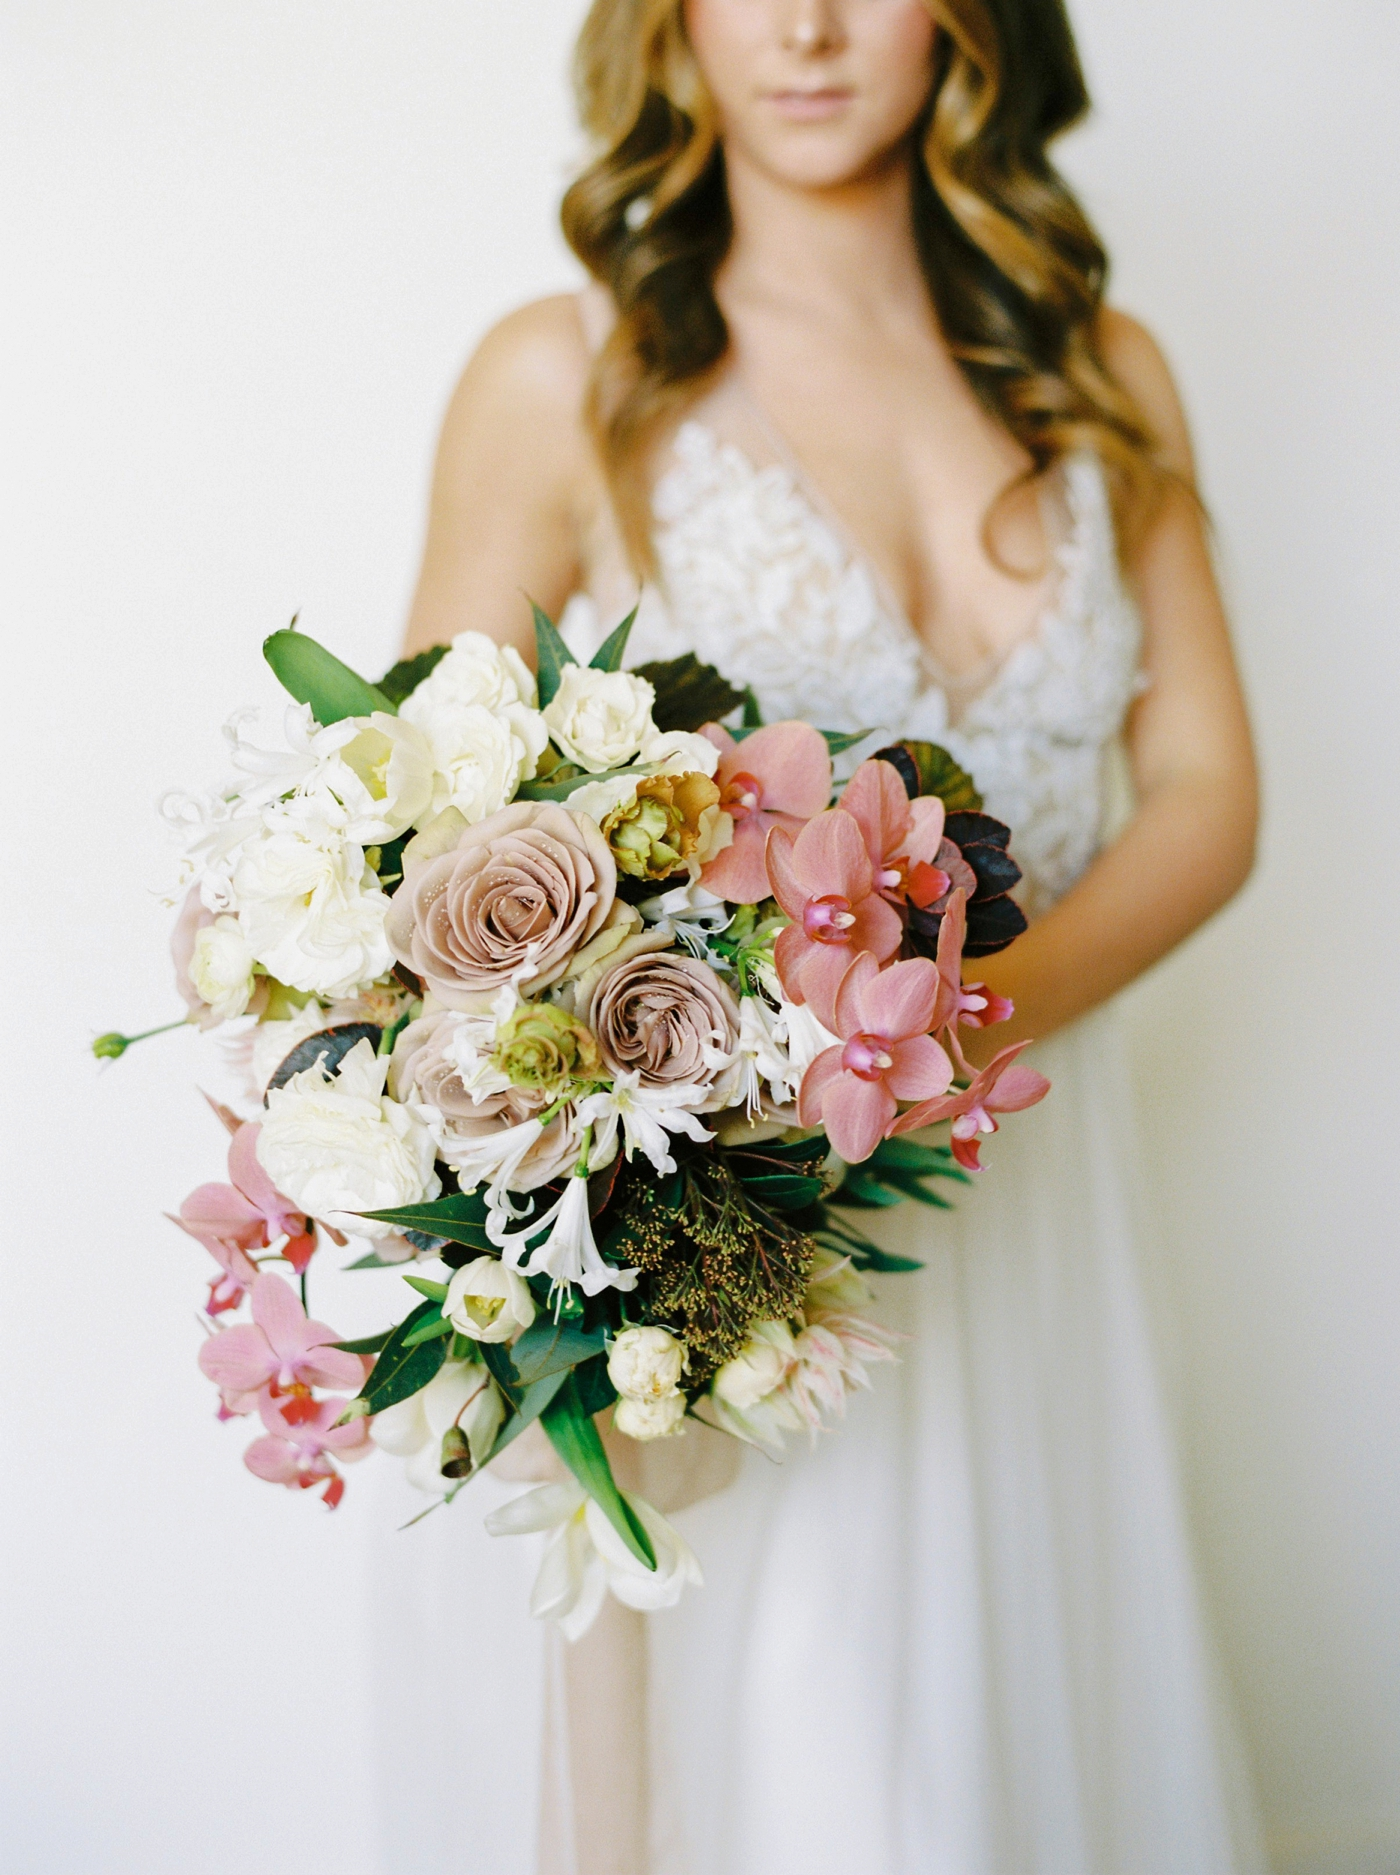 Calgary wedding photographers | Fine art film wedding photographer banff canmore lake louise | Justine Milton Photography | Social and Co editorial with Flower Artistry